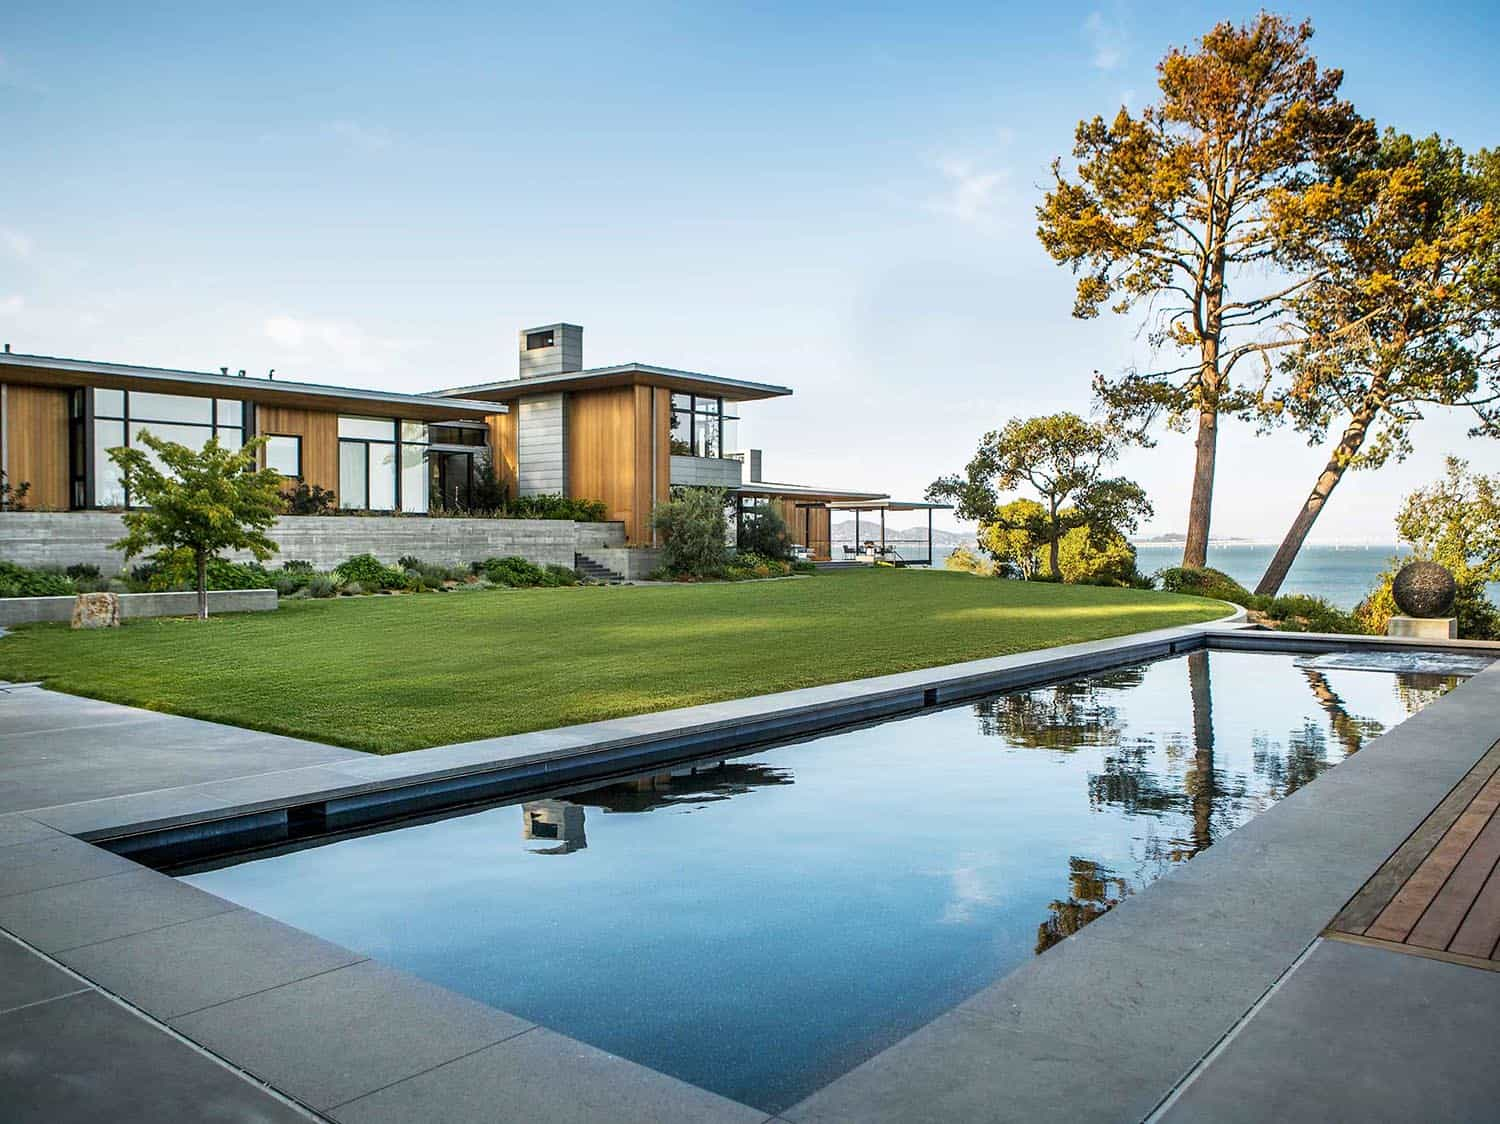 Remarkable energy efficient home boasts views over San Francisco Bay